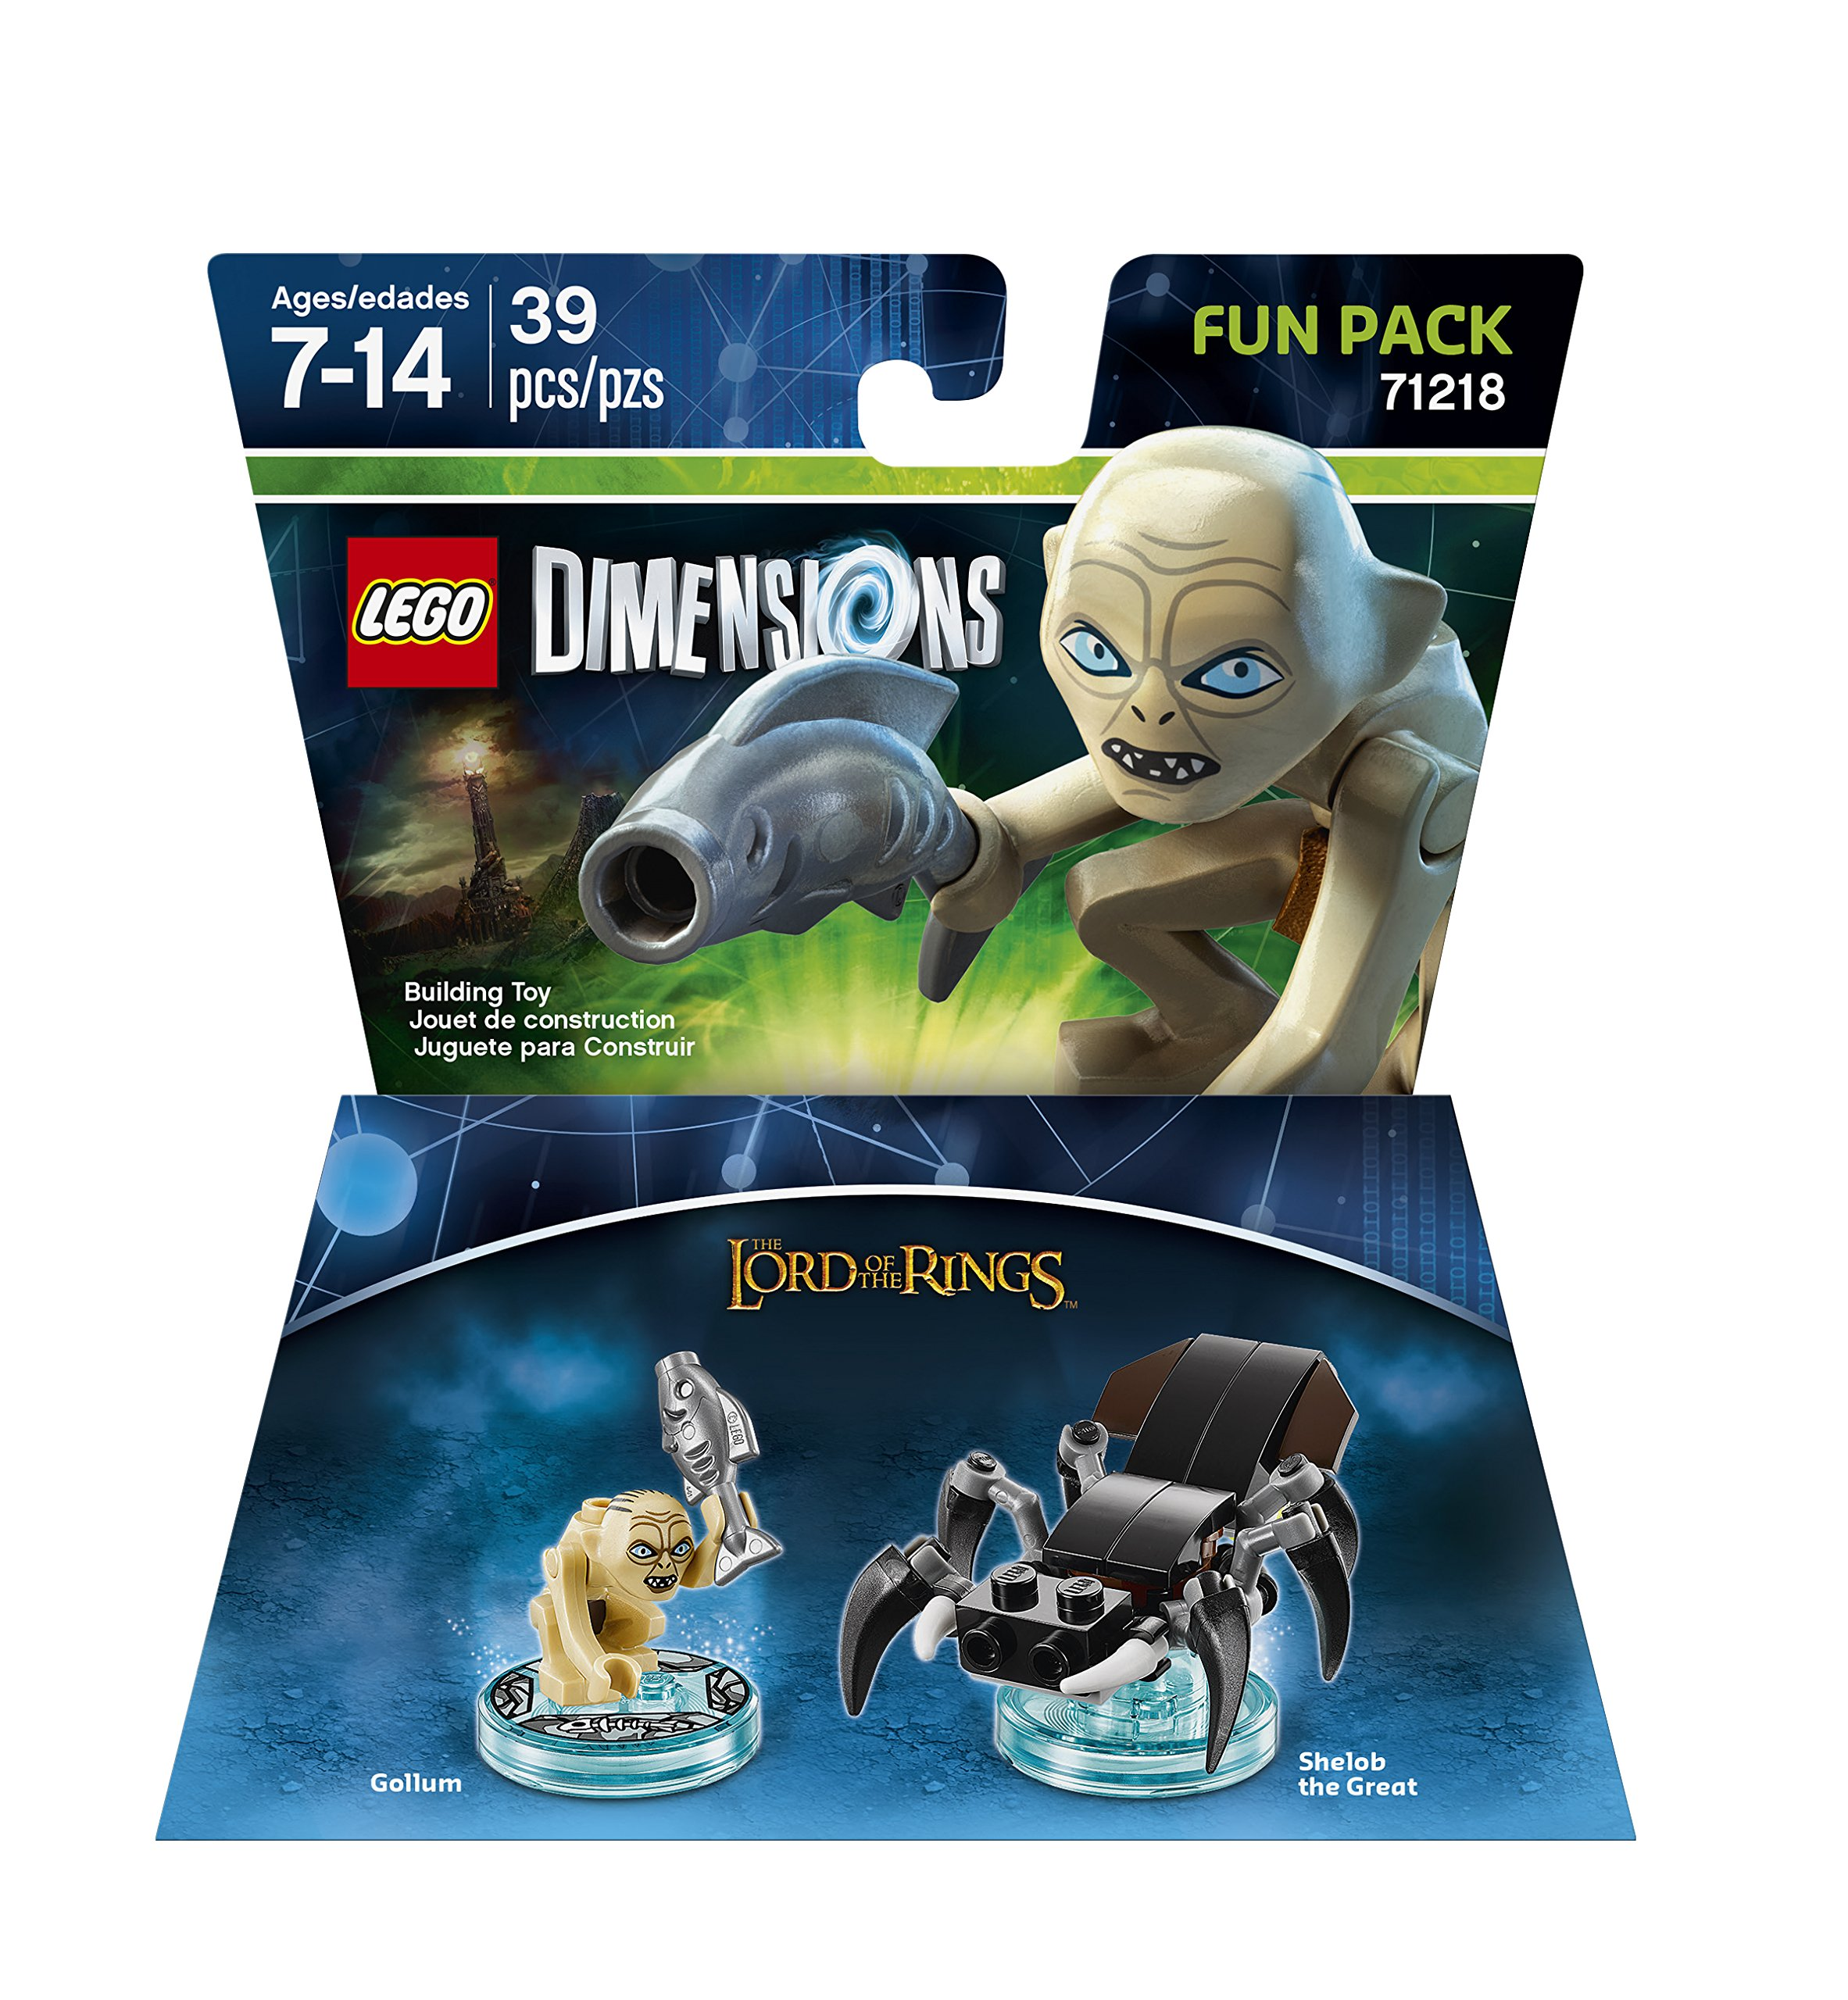 Lord Of The Rings Gollum Fun Pack - LEGO Dimensions